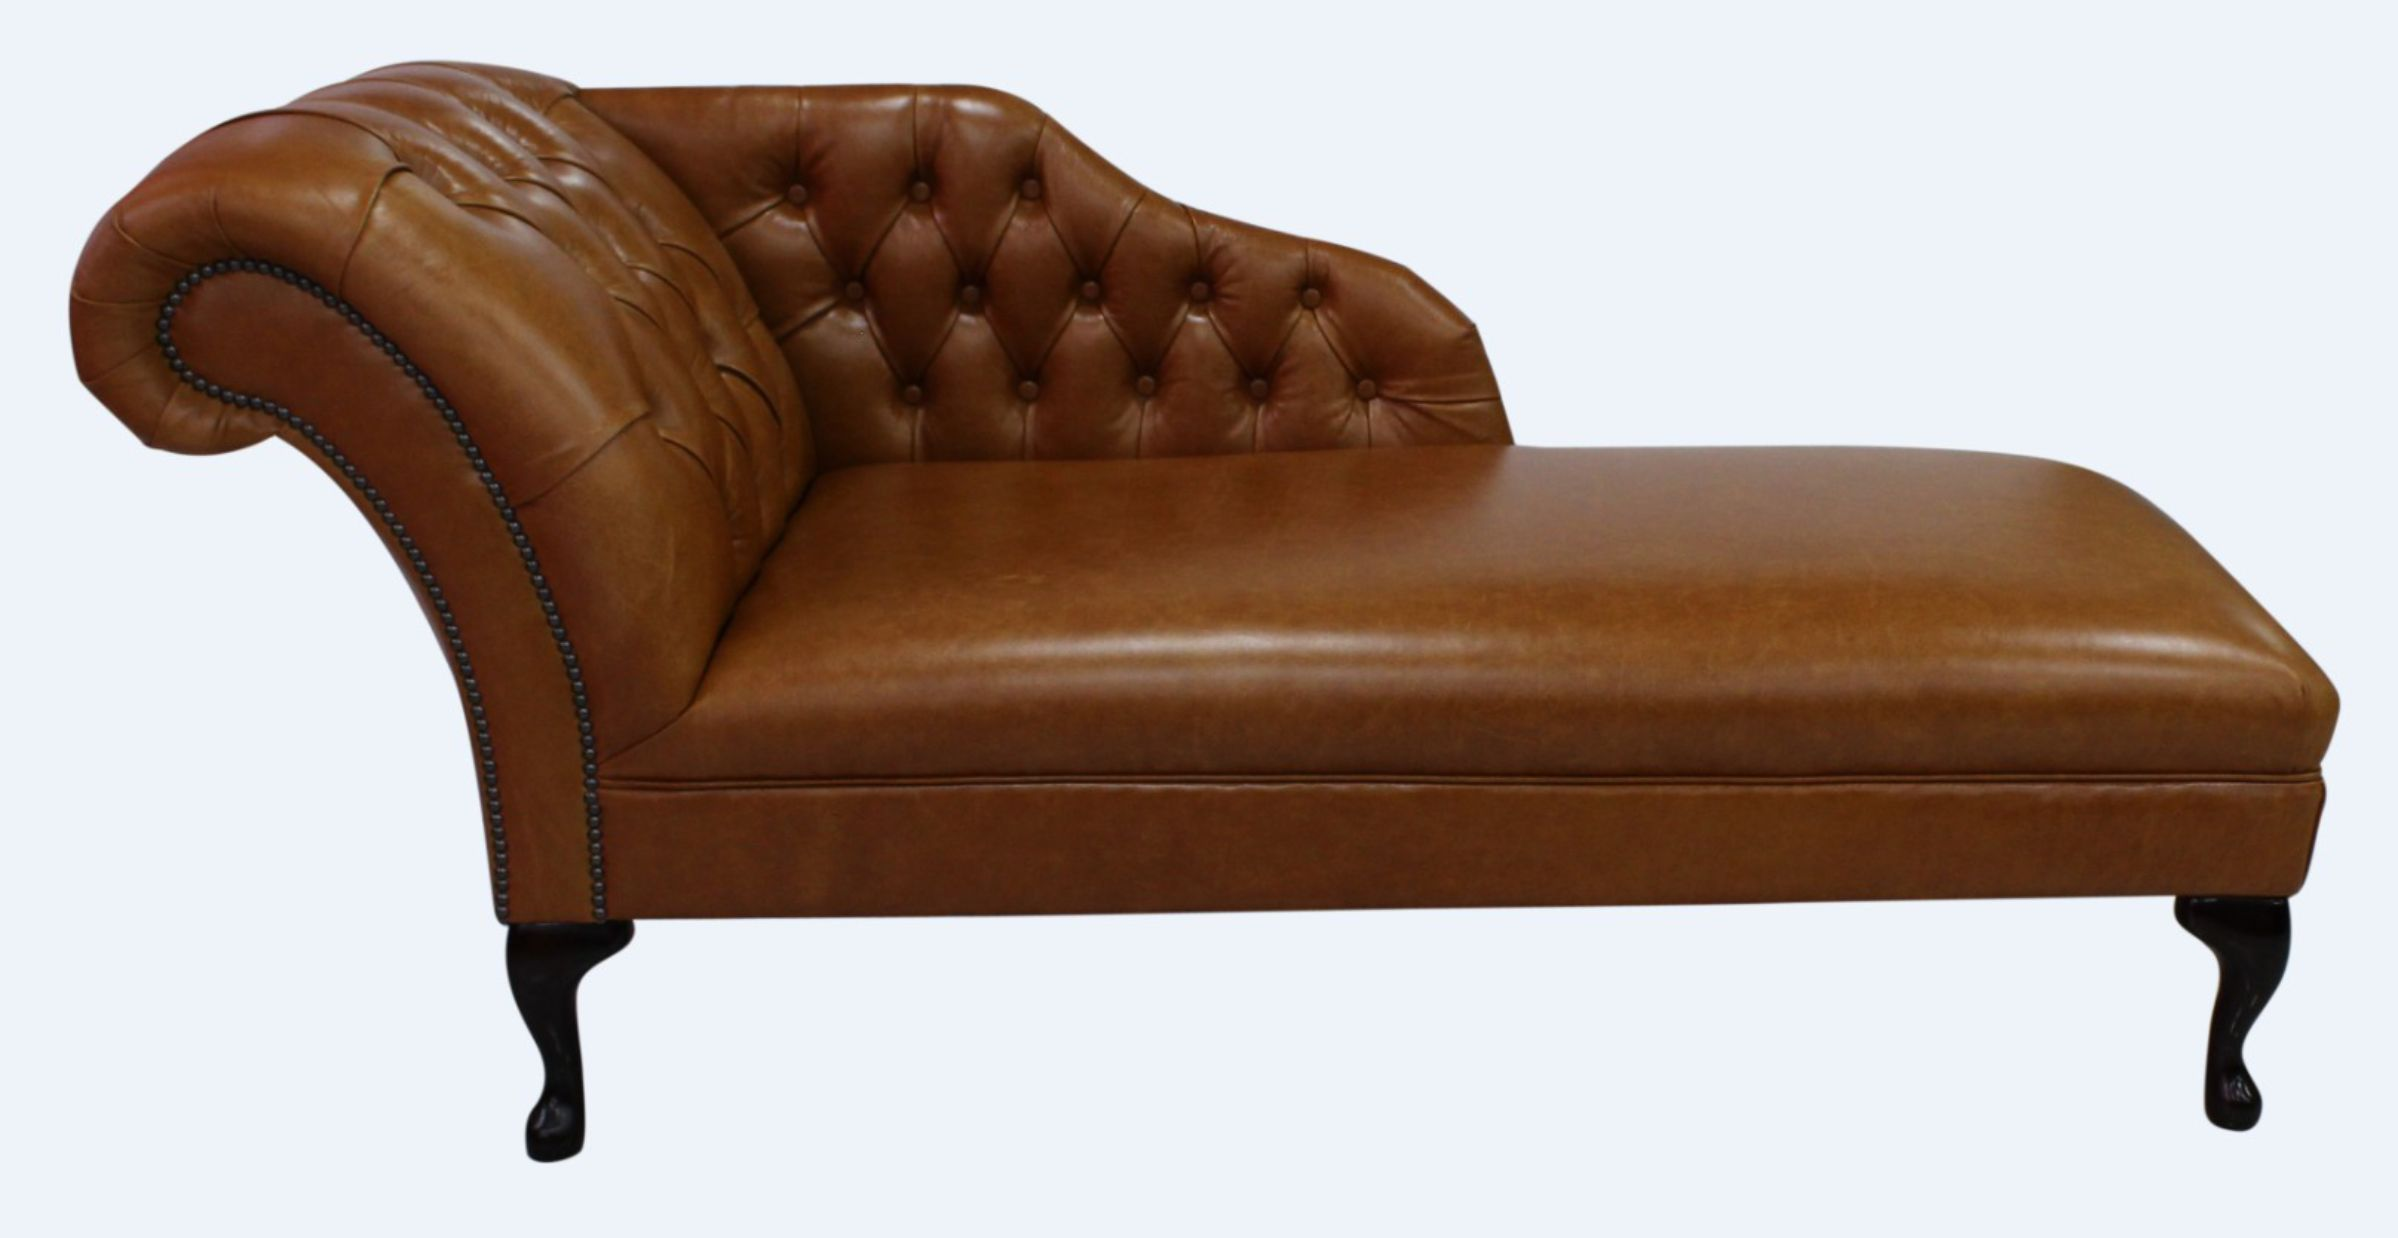 Chesterfield Leather Chaise Lounge Day Bed Designersofas4u